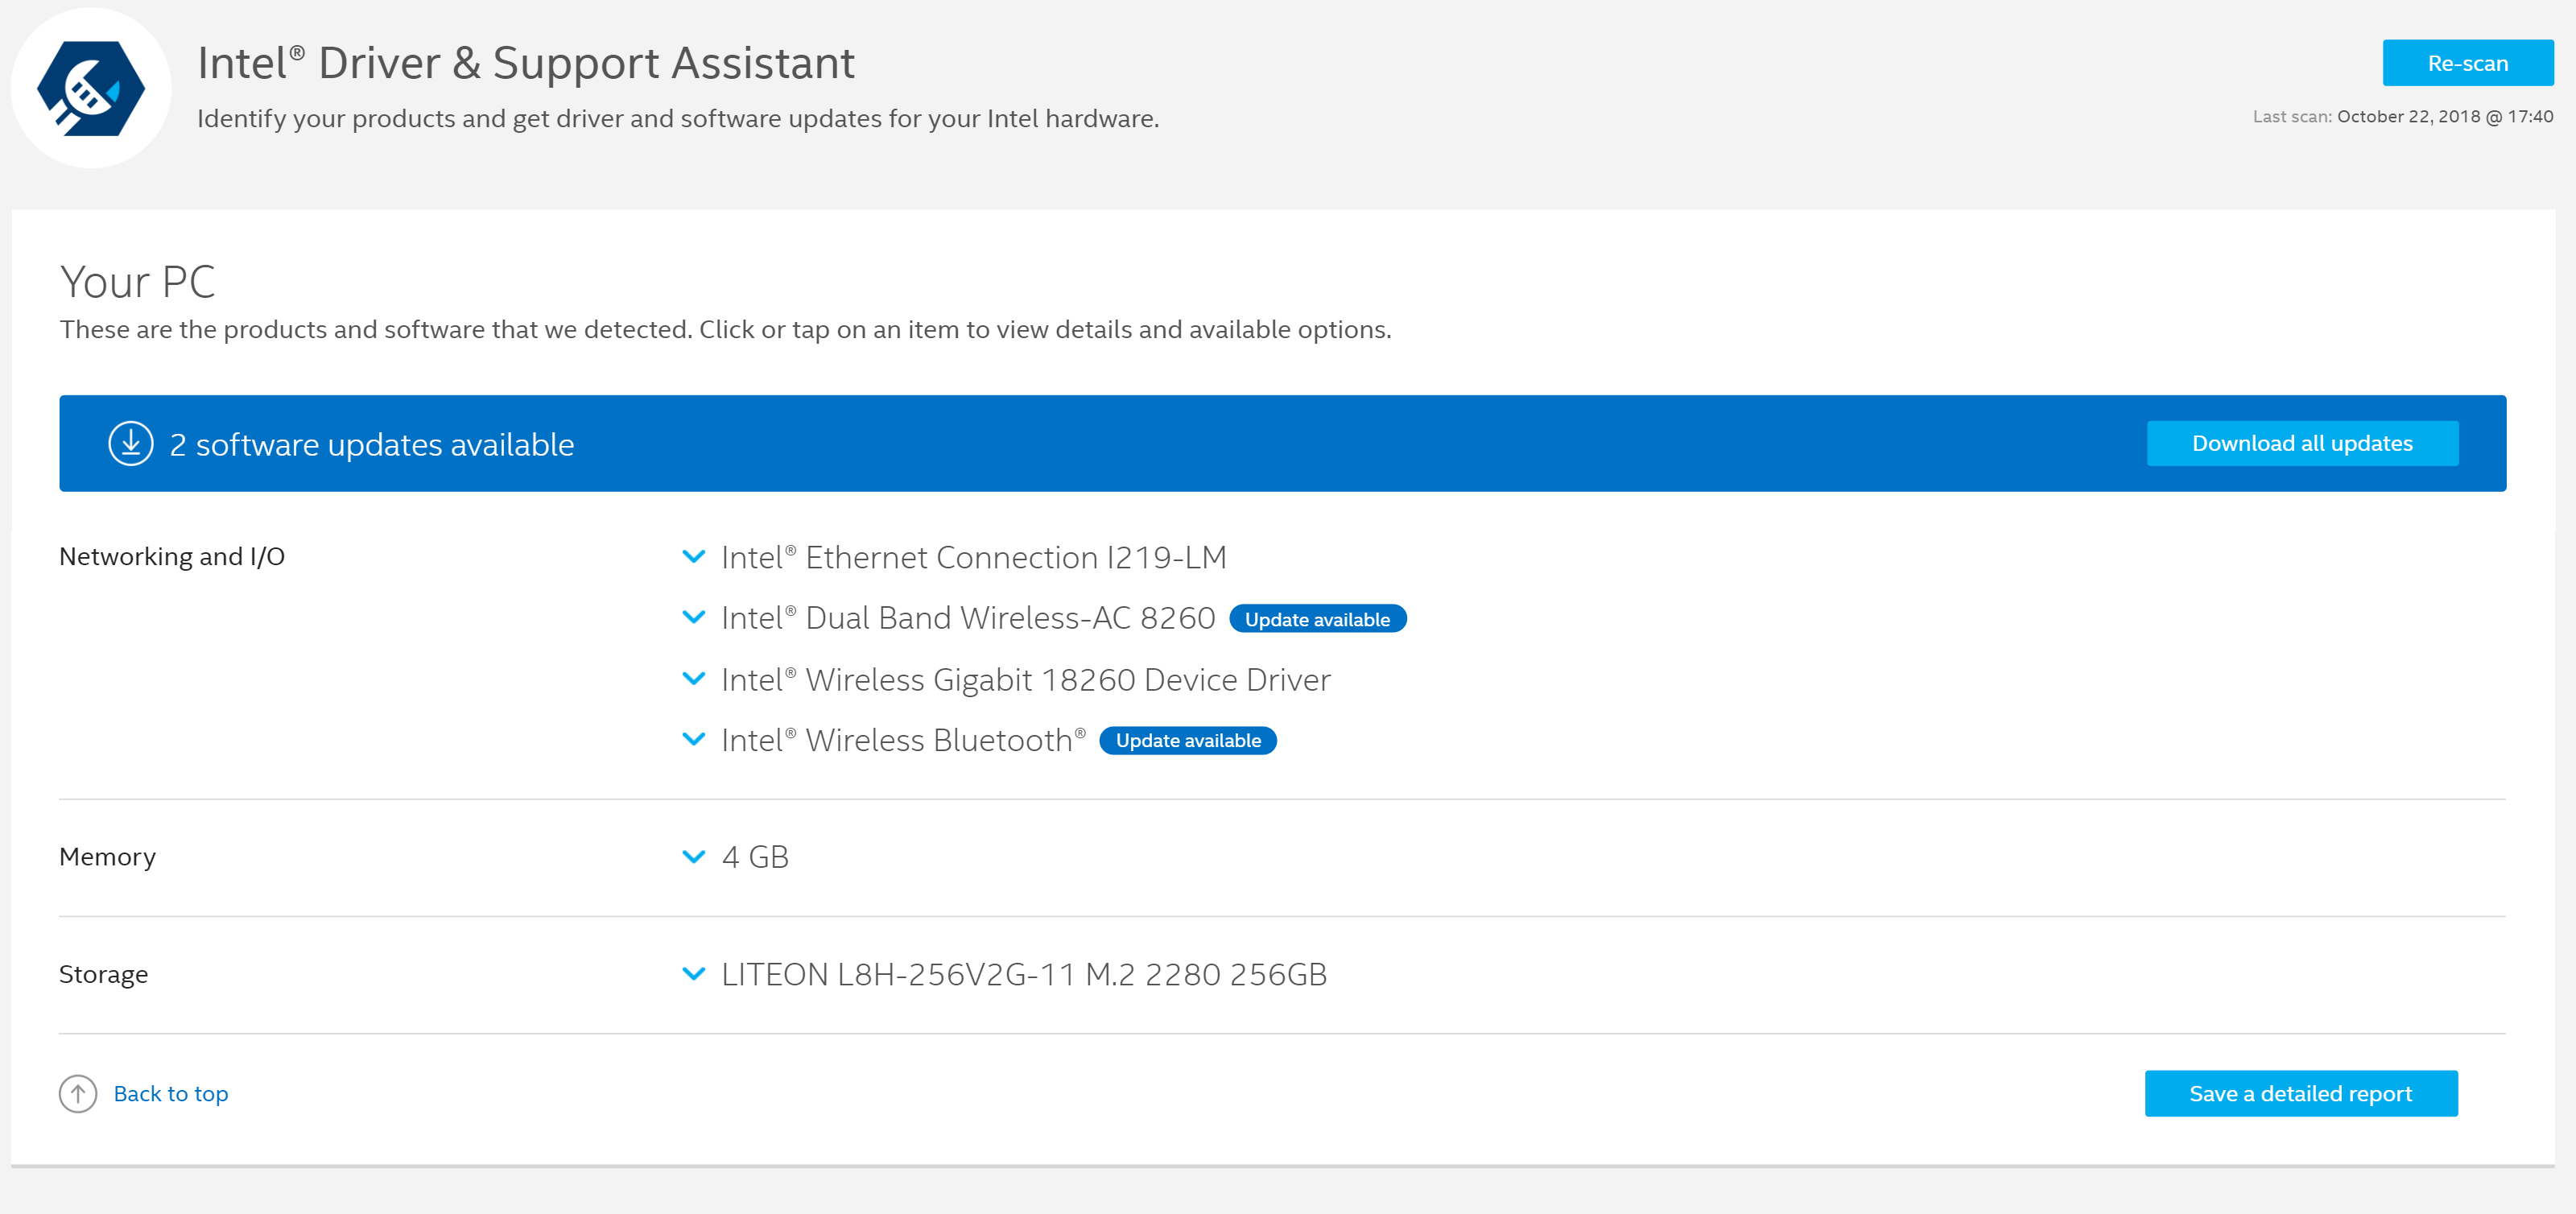 Intel ethernet connections boot utility download.